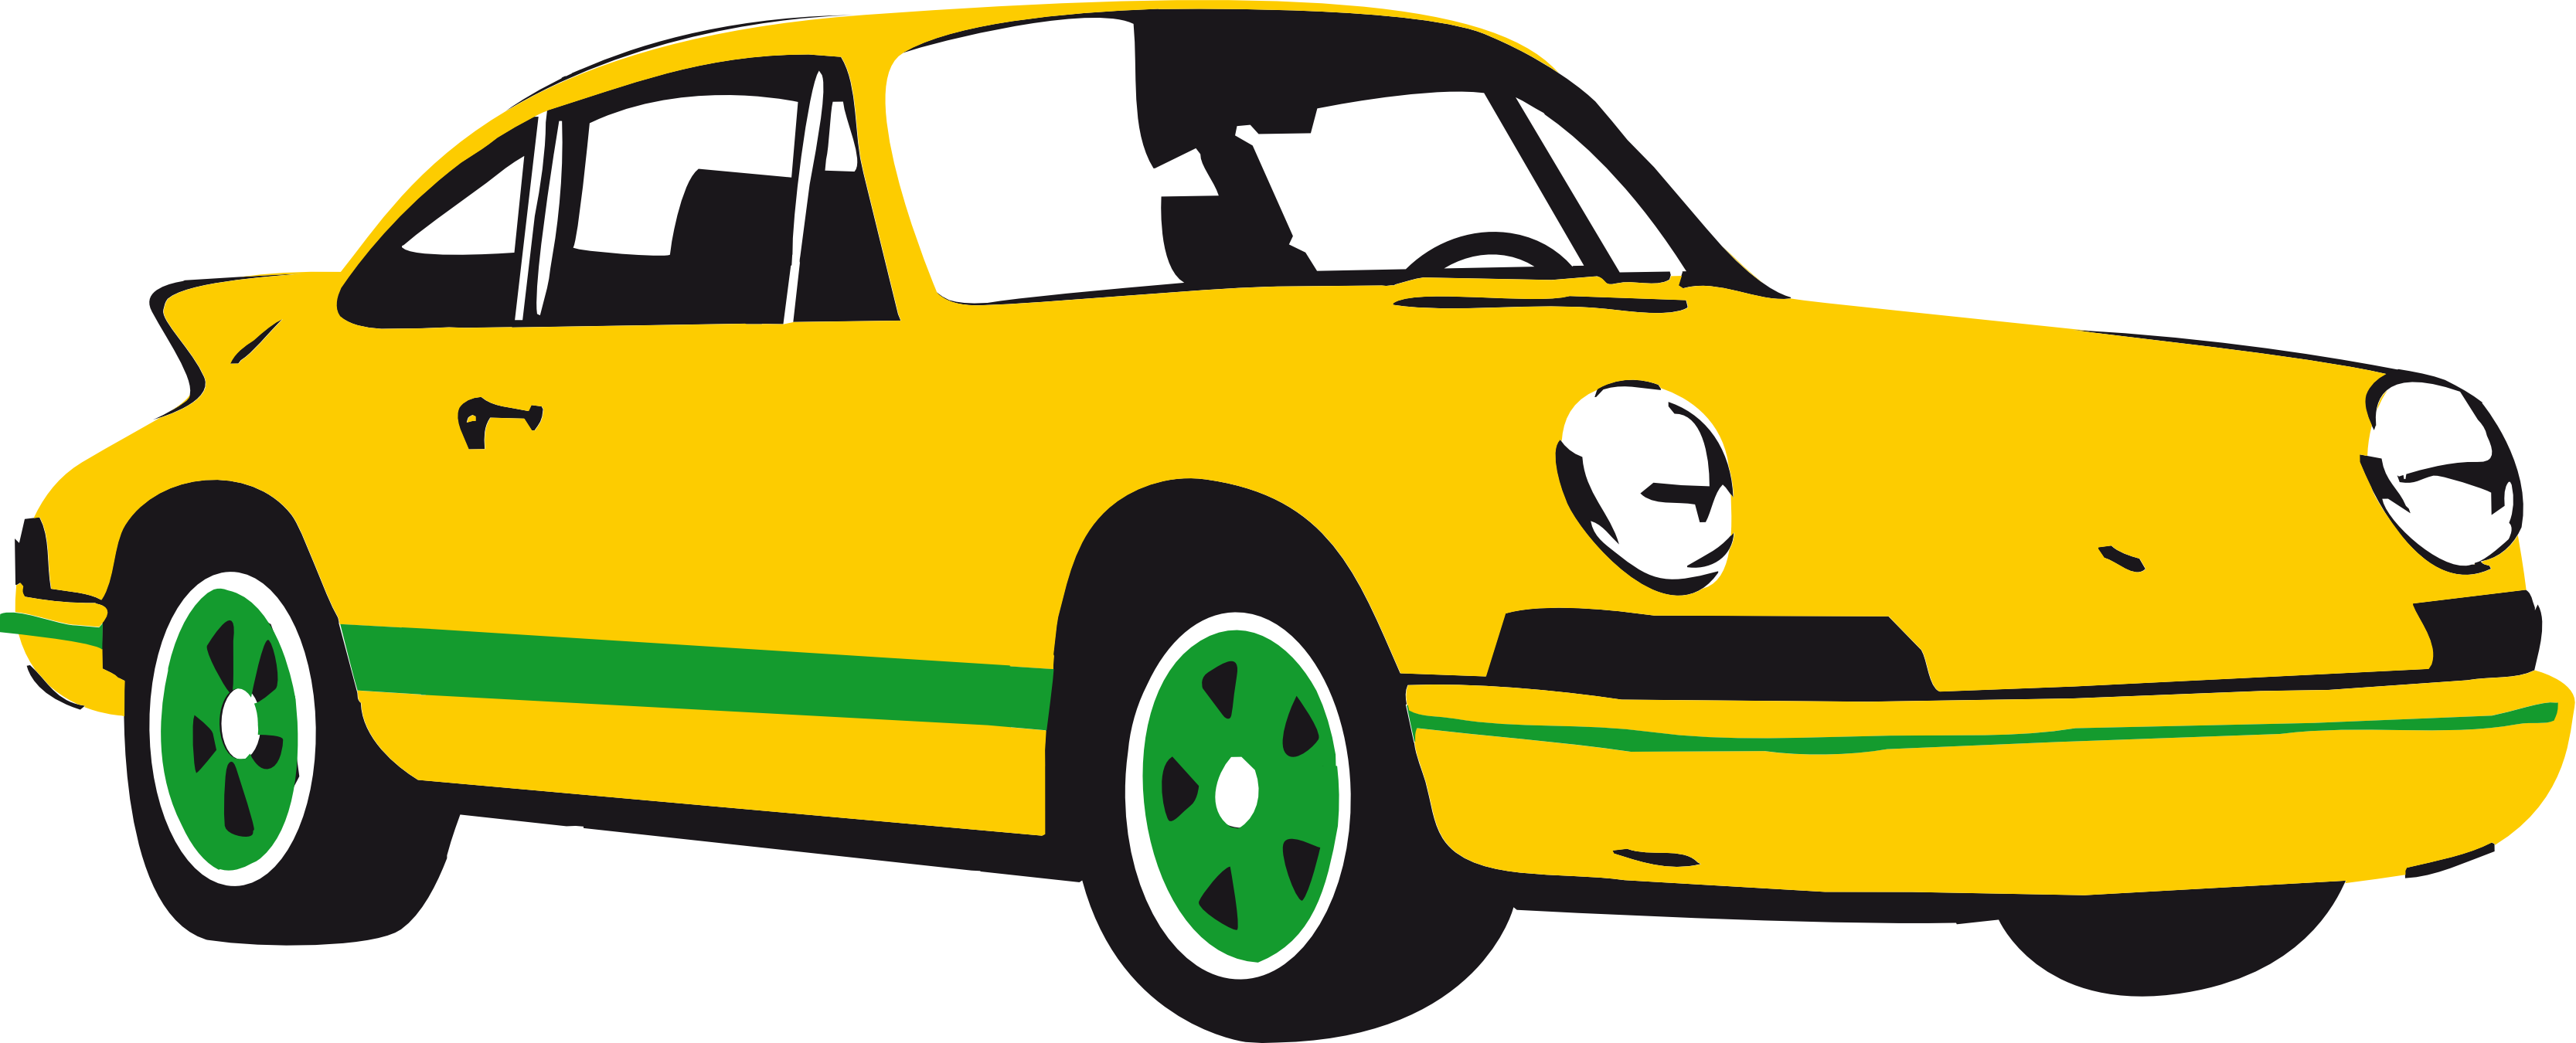 Car speeding away clipart clipart library stock Black Sports Car Clipart | Clipart Panda - Free Clipart Images clipart library stock